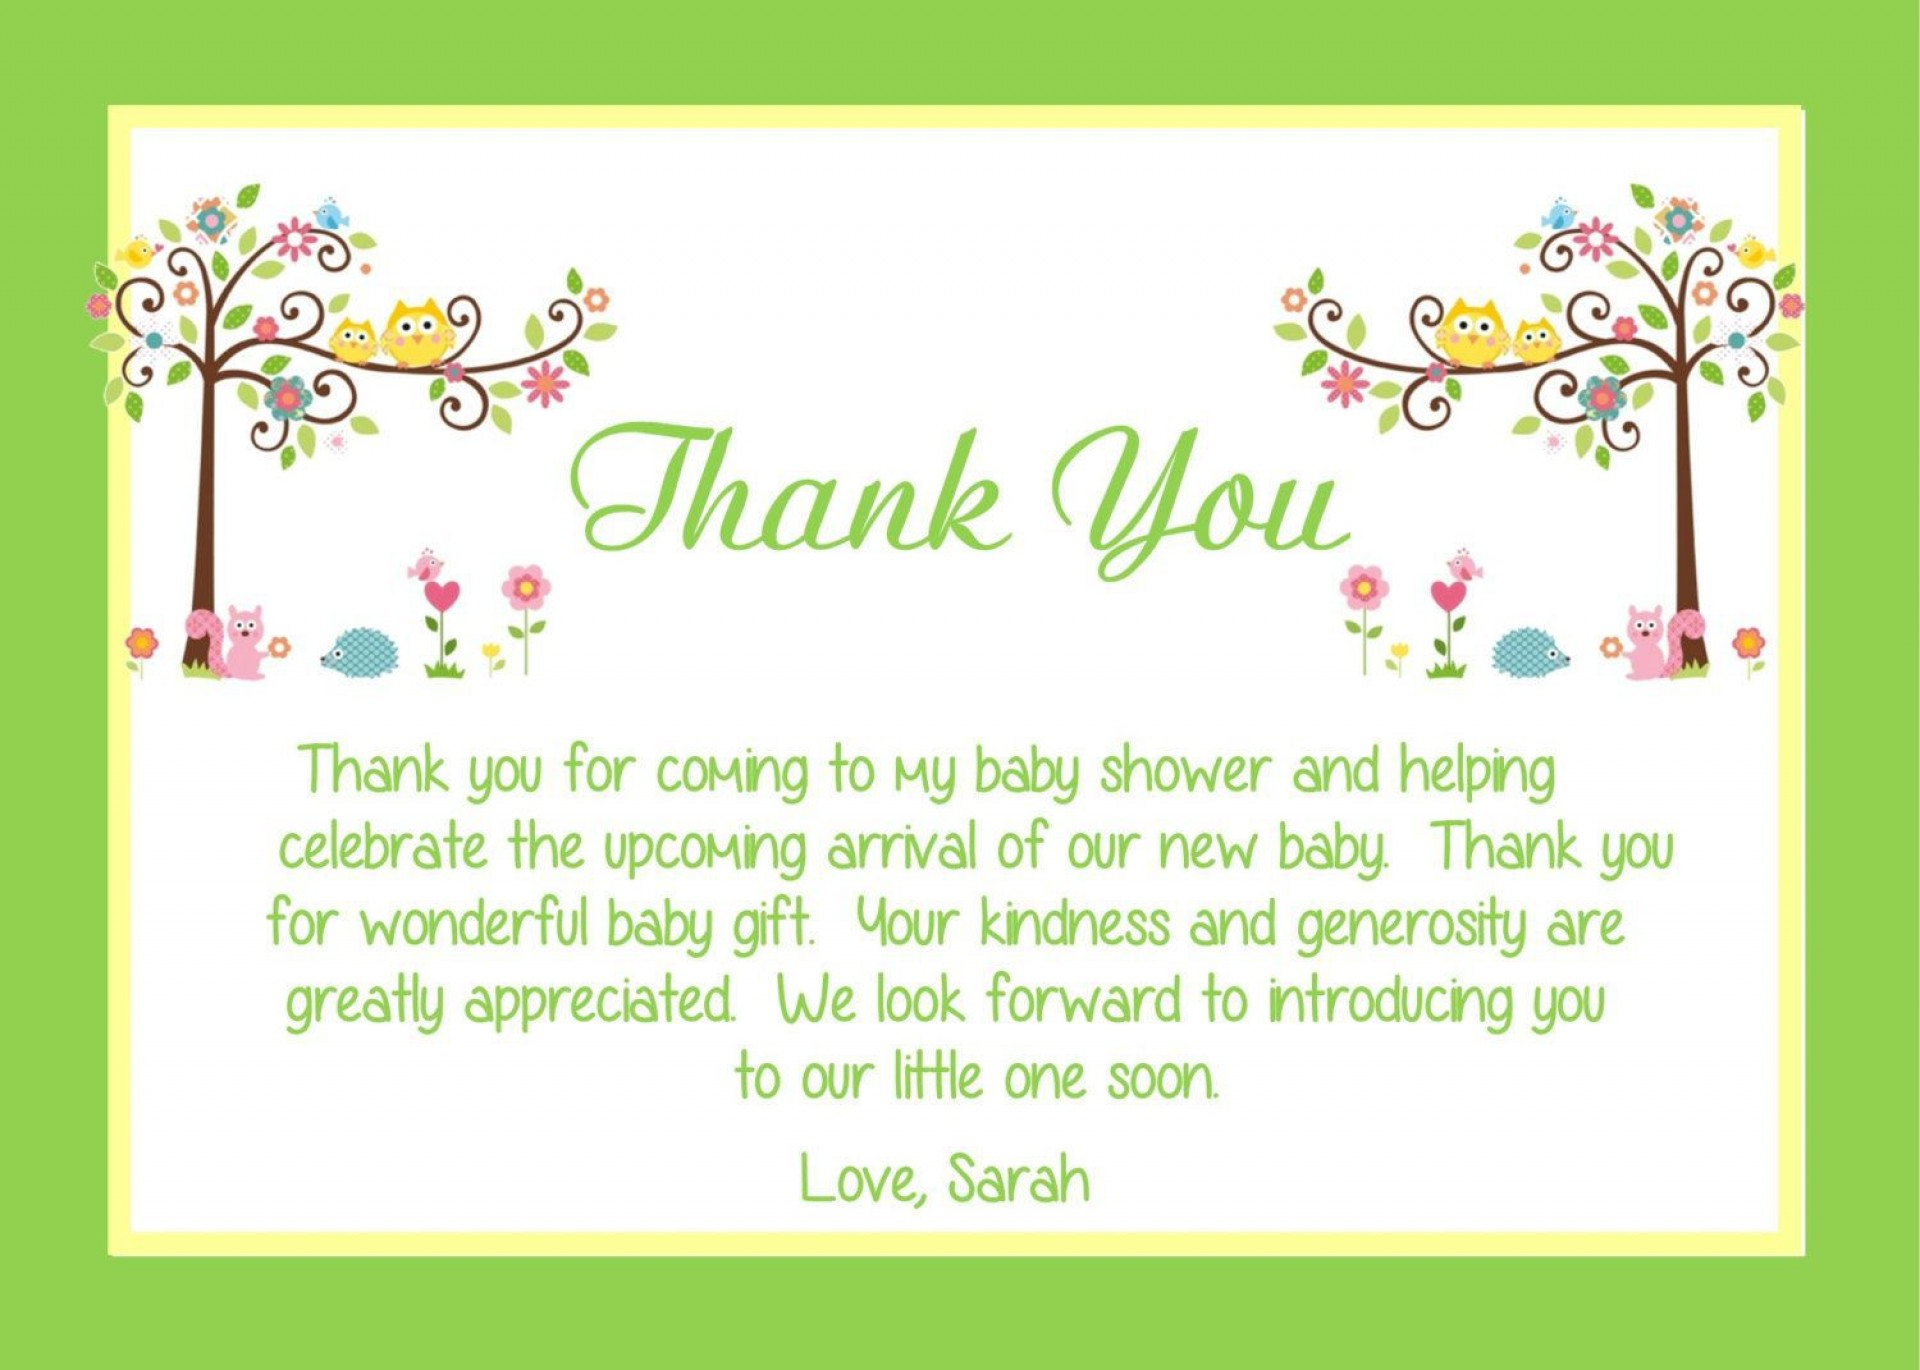 001 Rare Thank You Card Wording Baby Shower High Resolution  Note For Money Someone Who Didn't Attend Hostes1920